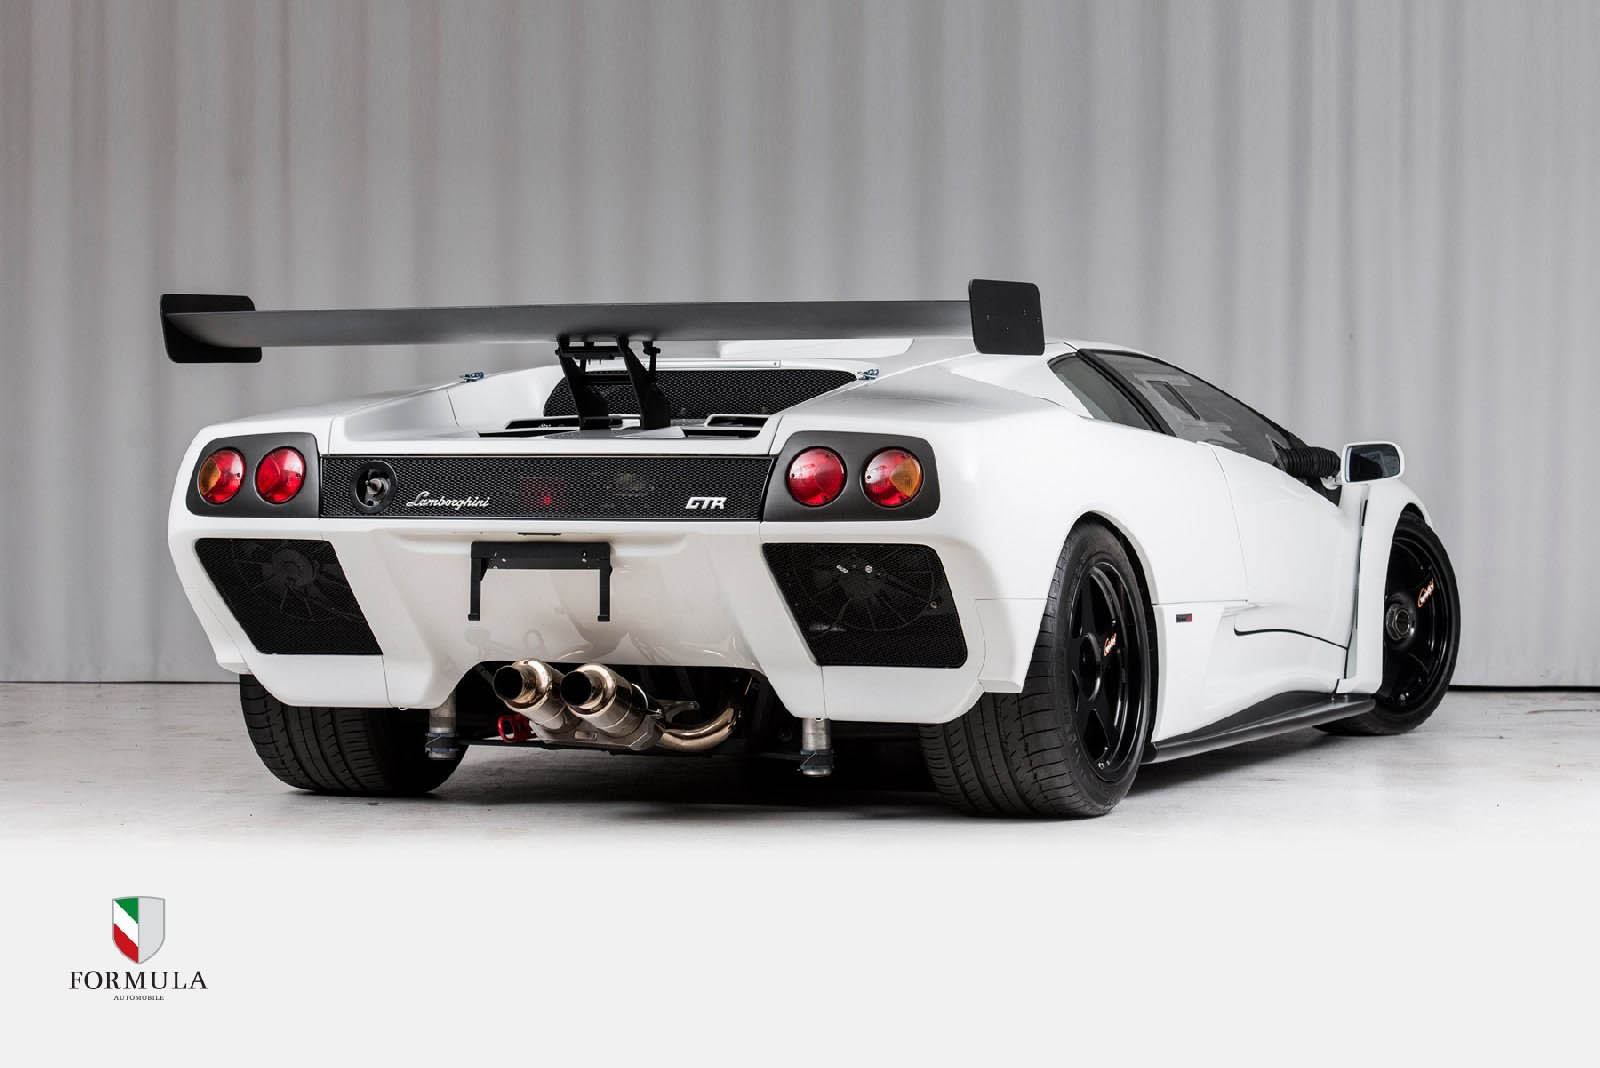 This Lamborghini Diablo Gtr Is The Devil S Own Track Toy